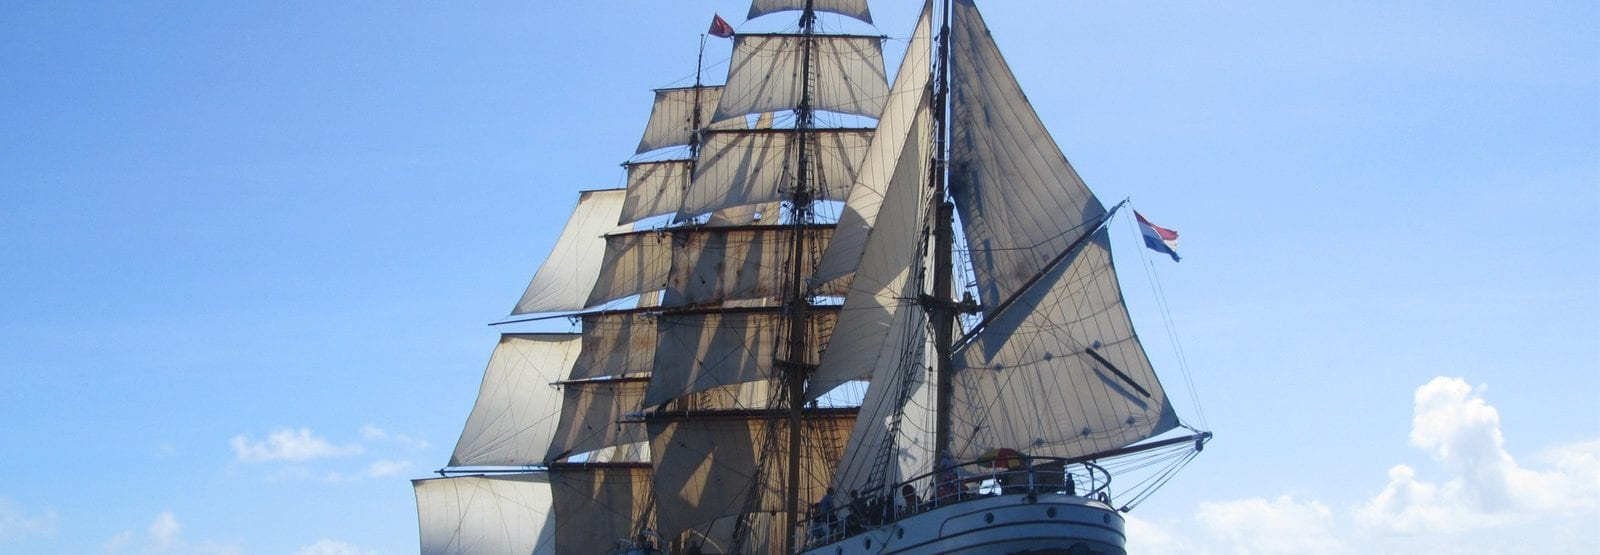 Pacific Voyage_tall ship